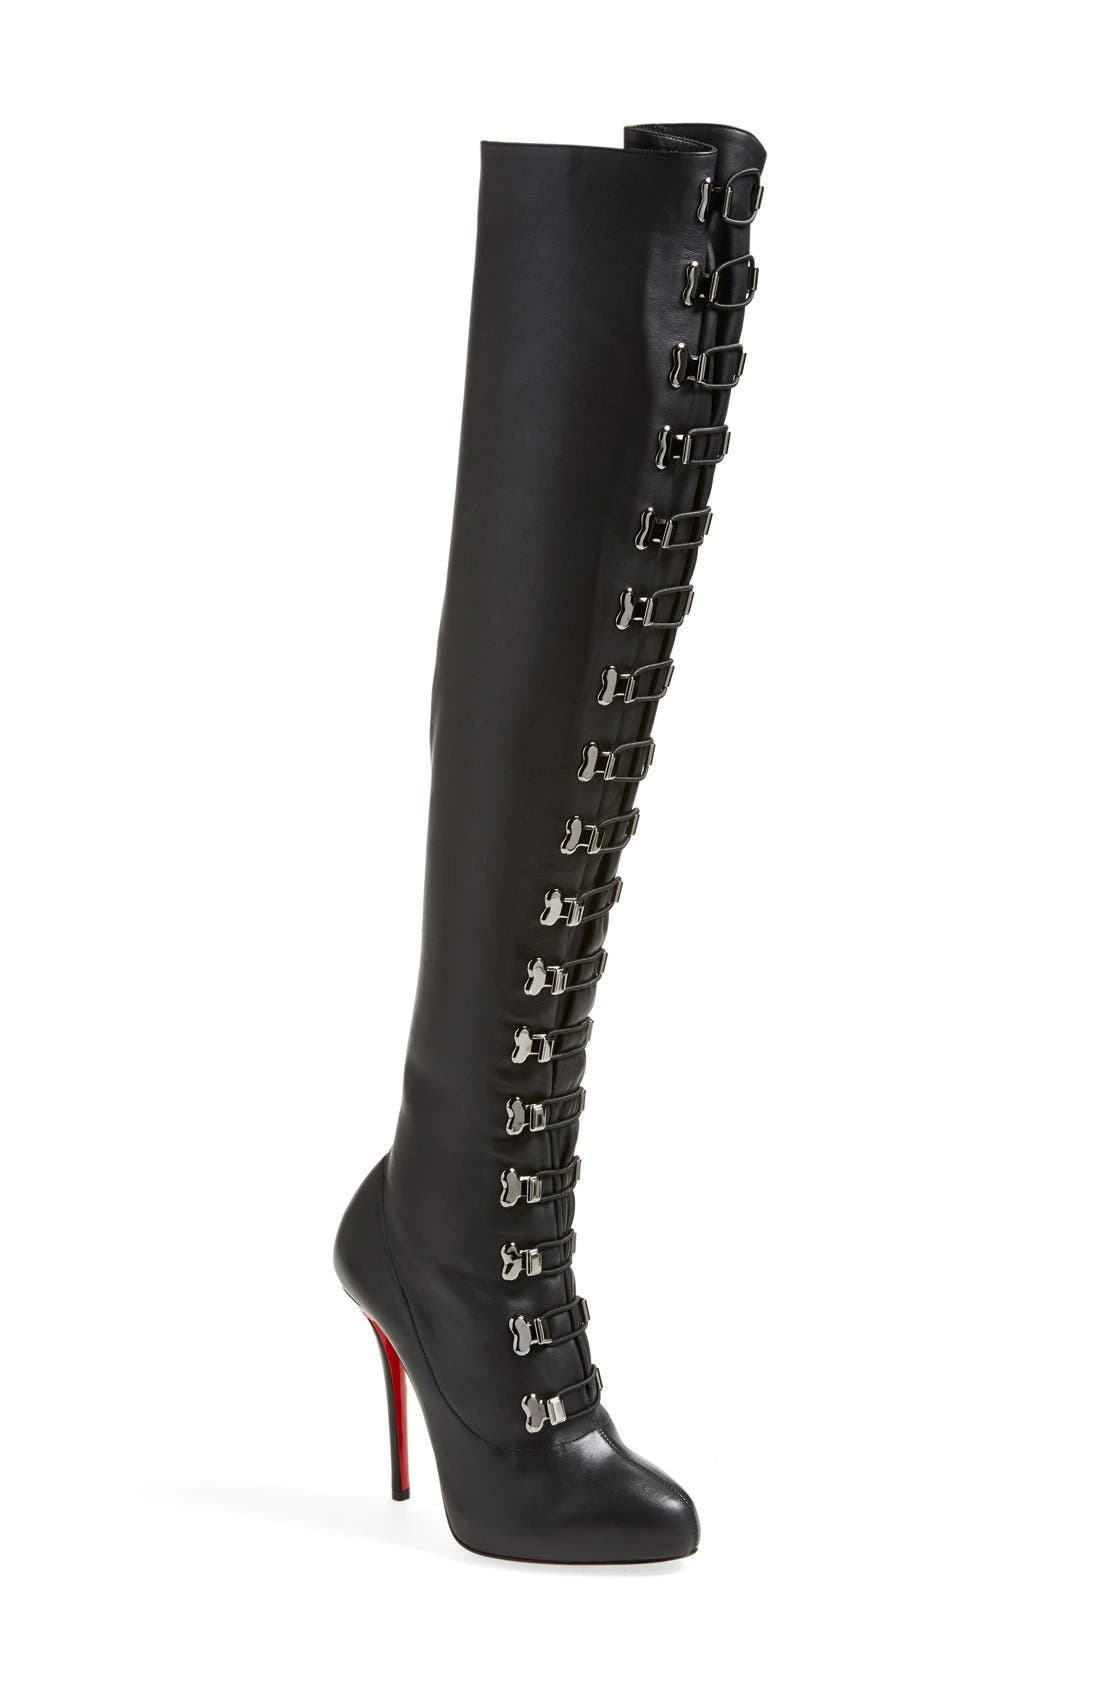 Main Image - Christian Louboutin 'Top Croche' Over the Knee Boot